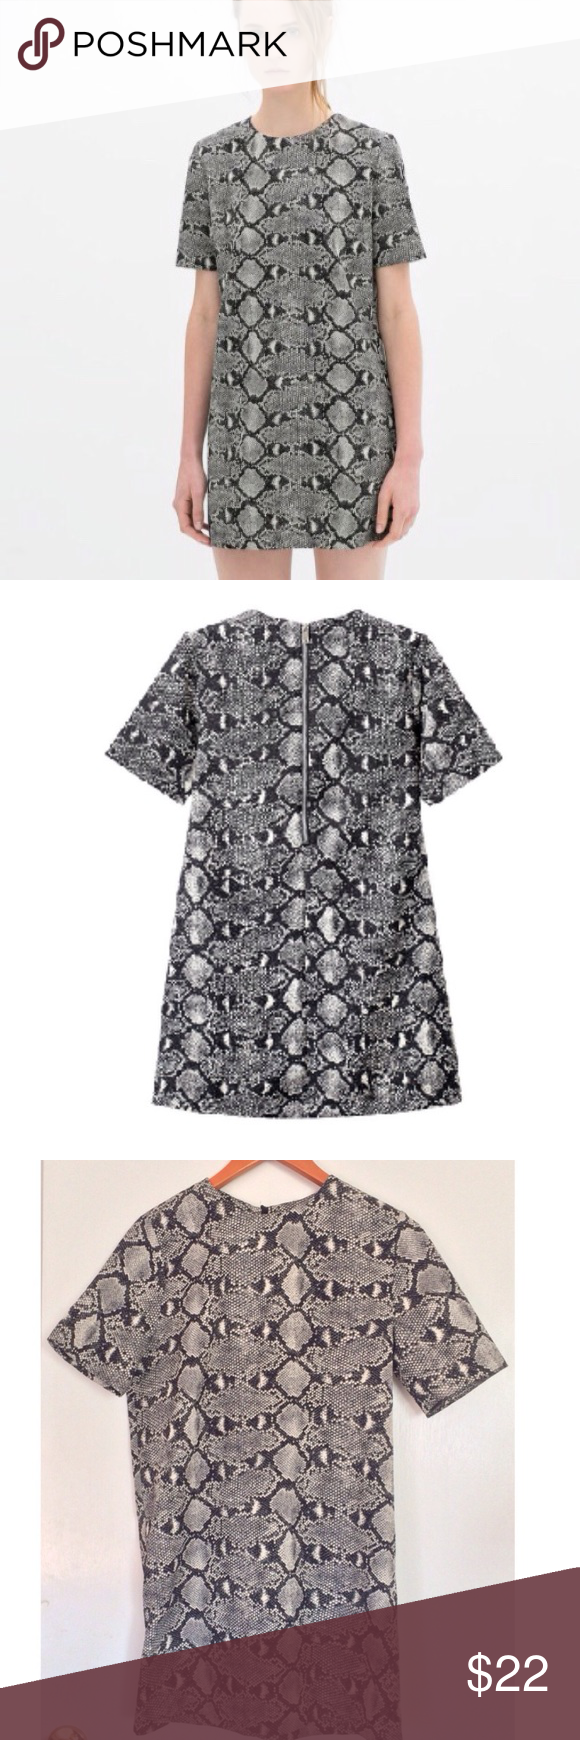 Zara Reptile Shift Mini Dress Zara Women....absolutely perfect. Reptile print shift mini dress. Exposed back zipper. Size M..19 in pit to pit, 16 in shoulder to shoulder, 23 pit to hem, 32 shoulder to hem. NO OFFERSPRICE FIRMBUY IT NOW OPTION ONLYI ONLY TRADE FOR CASH Dresses Mini